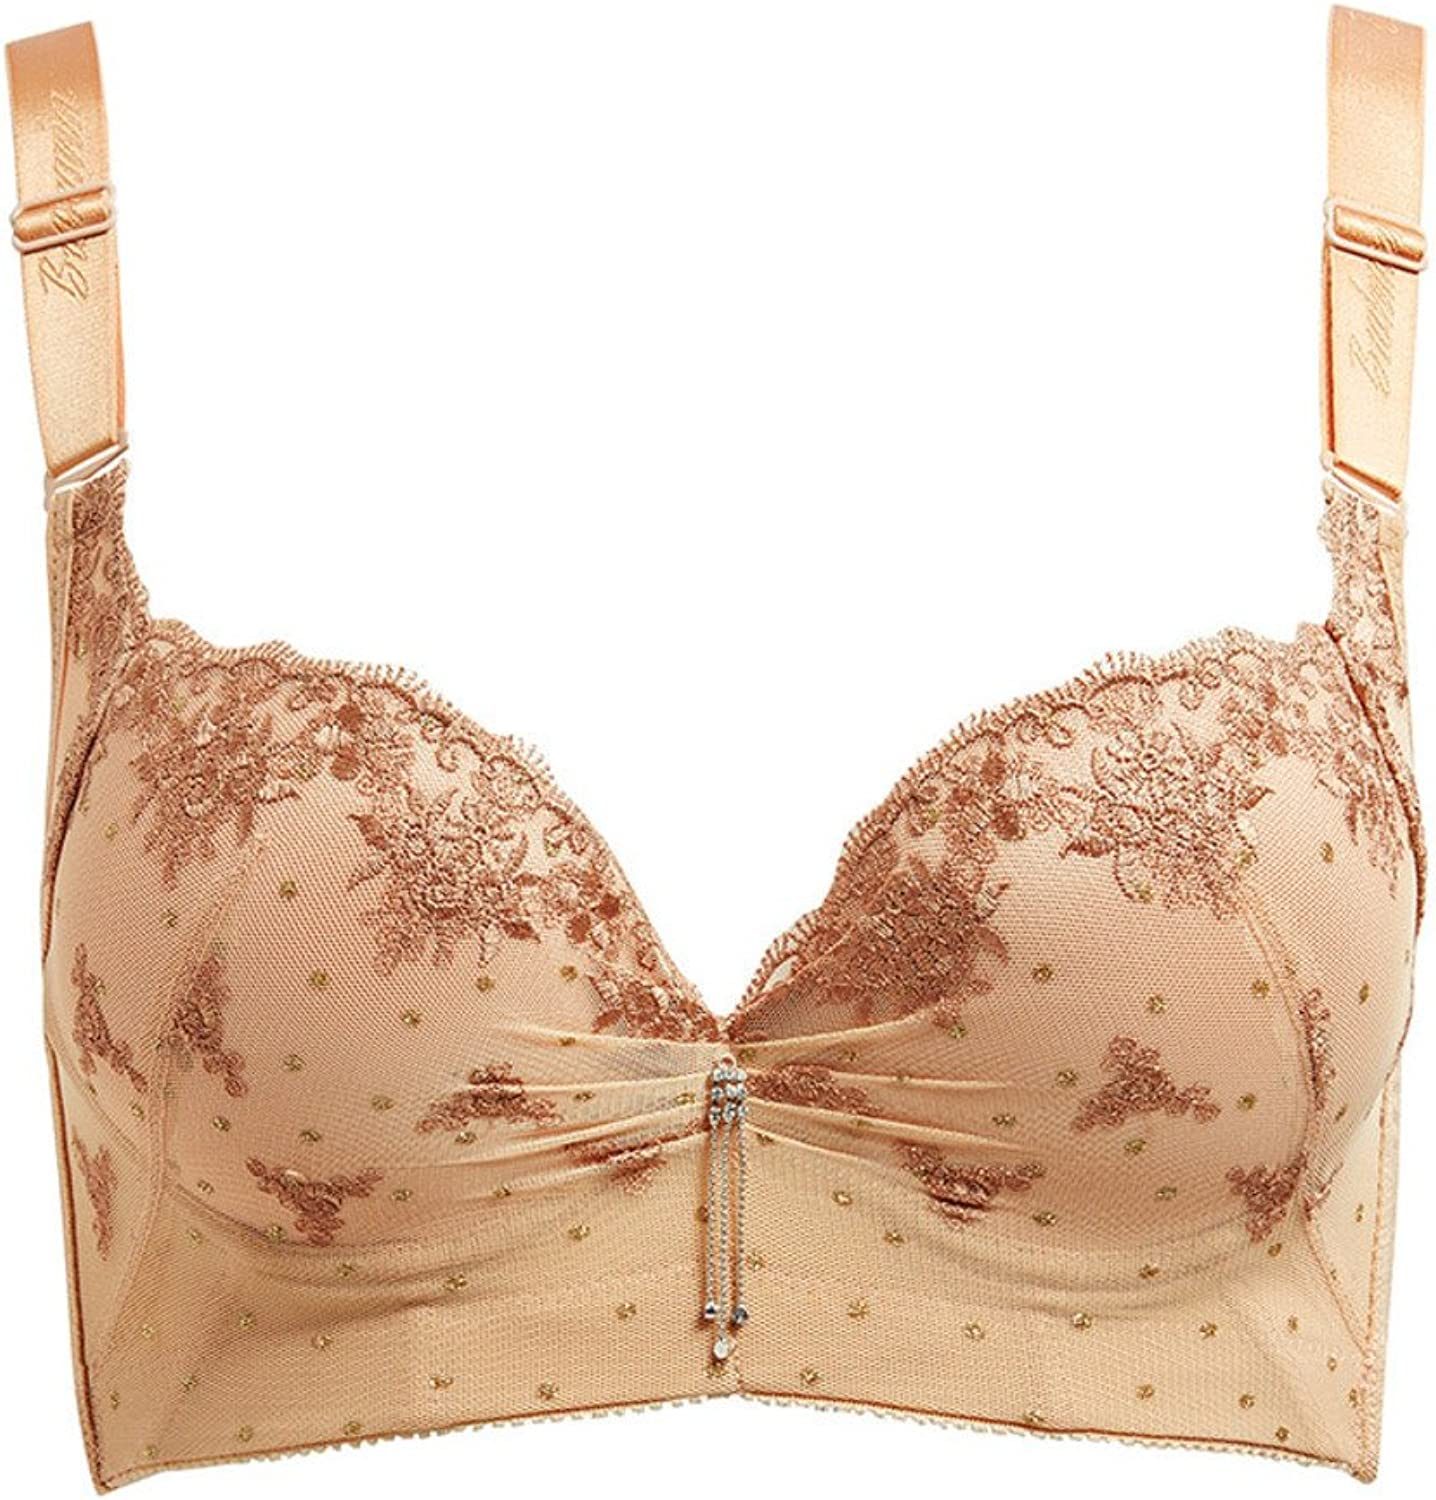 HFDSTRH GHRHA Adjustable Side Thick Cup of Lingerie in Your Tok Sexy deepv Bra lace Embroidery